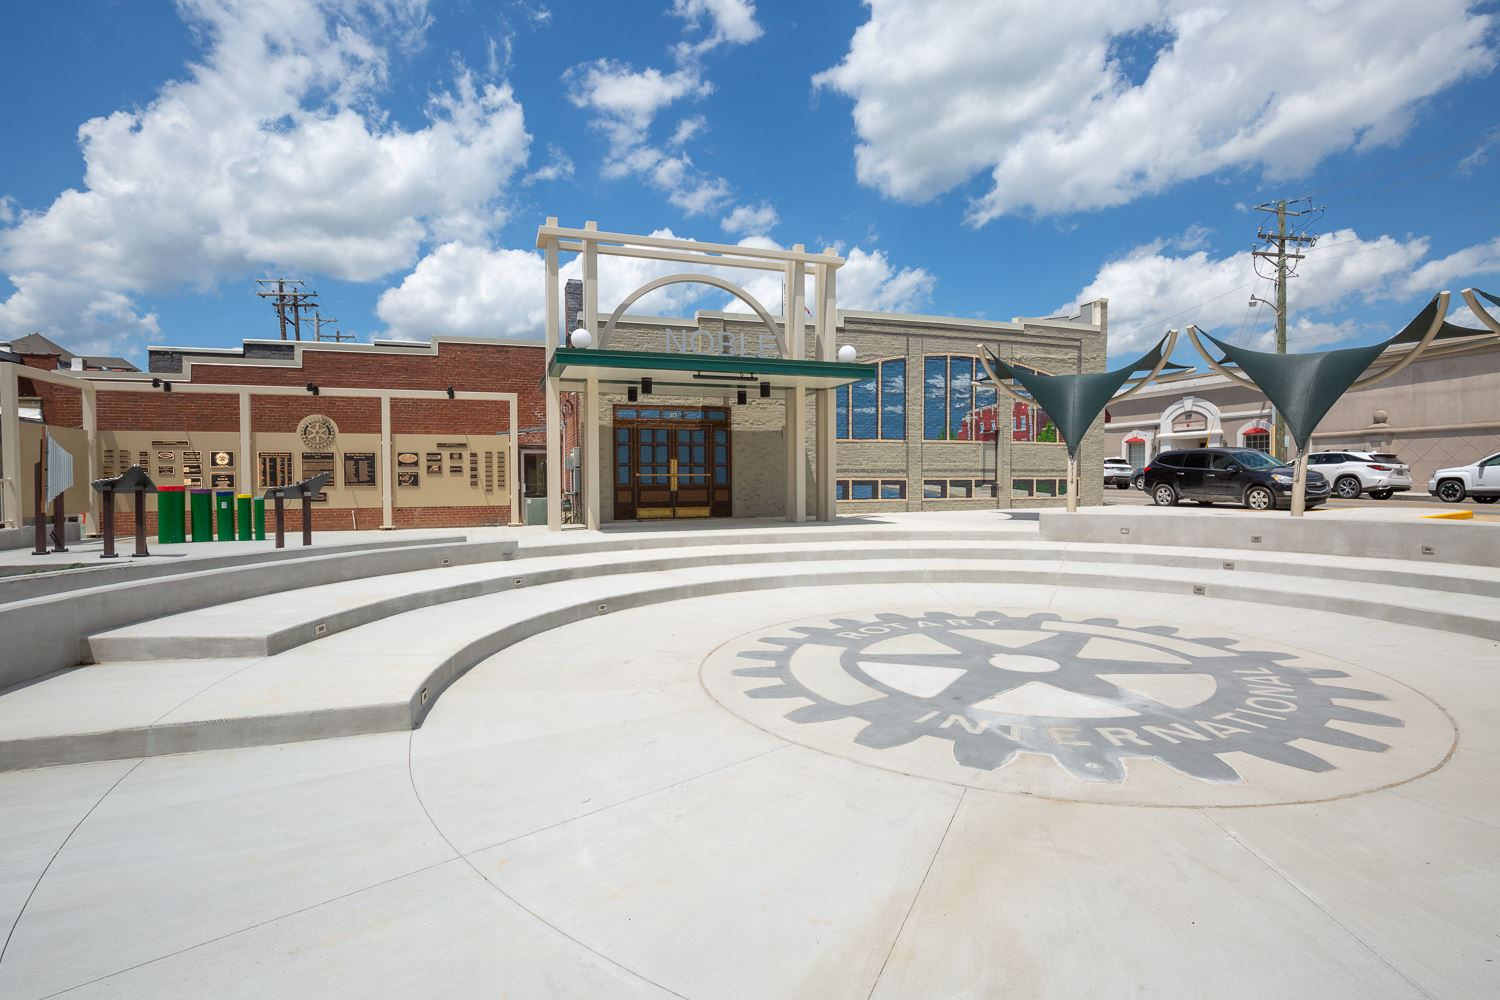 Rotary Club of Jonesboro Centennial Plaza